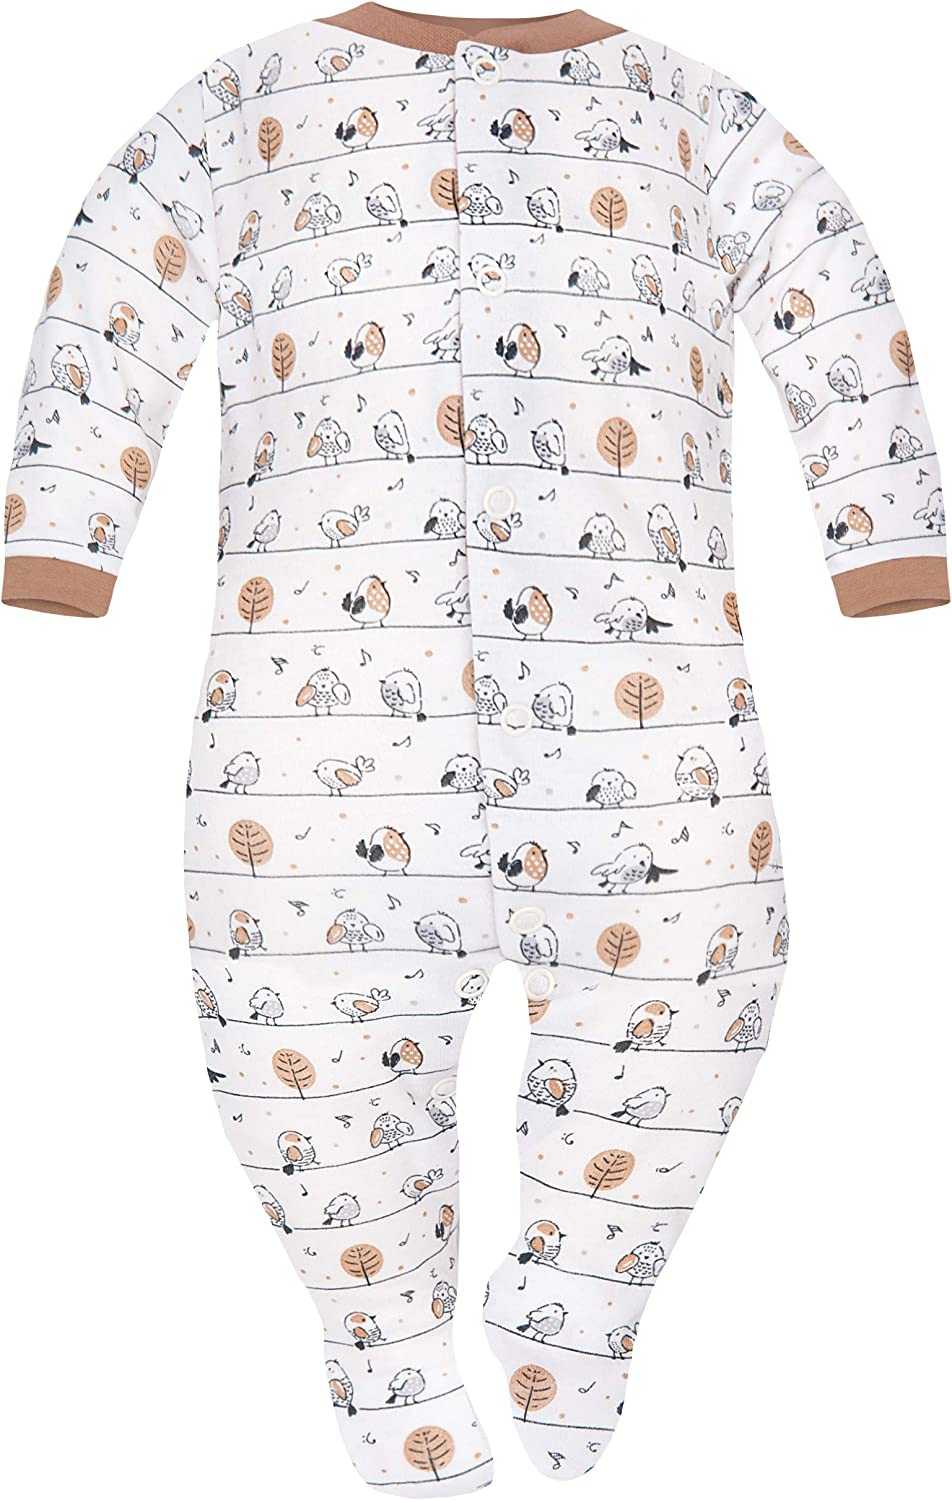 SIBINULO Baby Boys Baby Girls Sleepsuit with Feet Mix Pack of 2 Sizes 0-9 Months